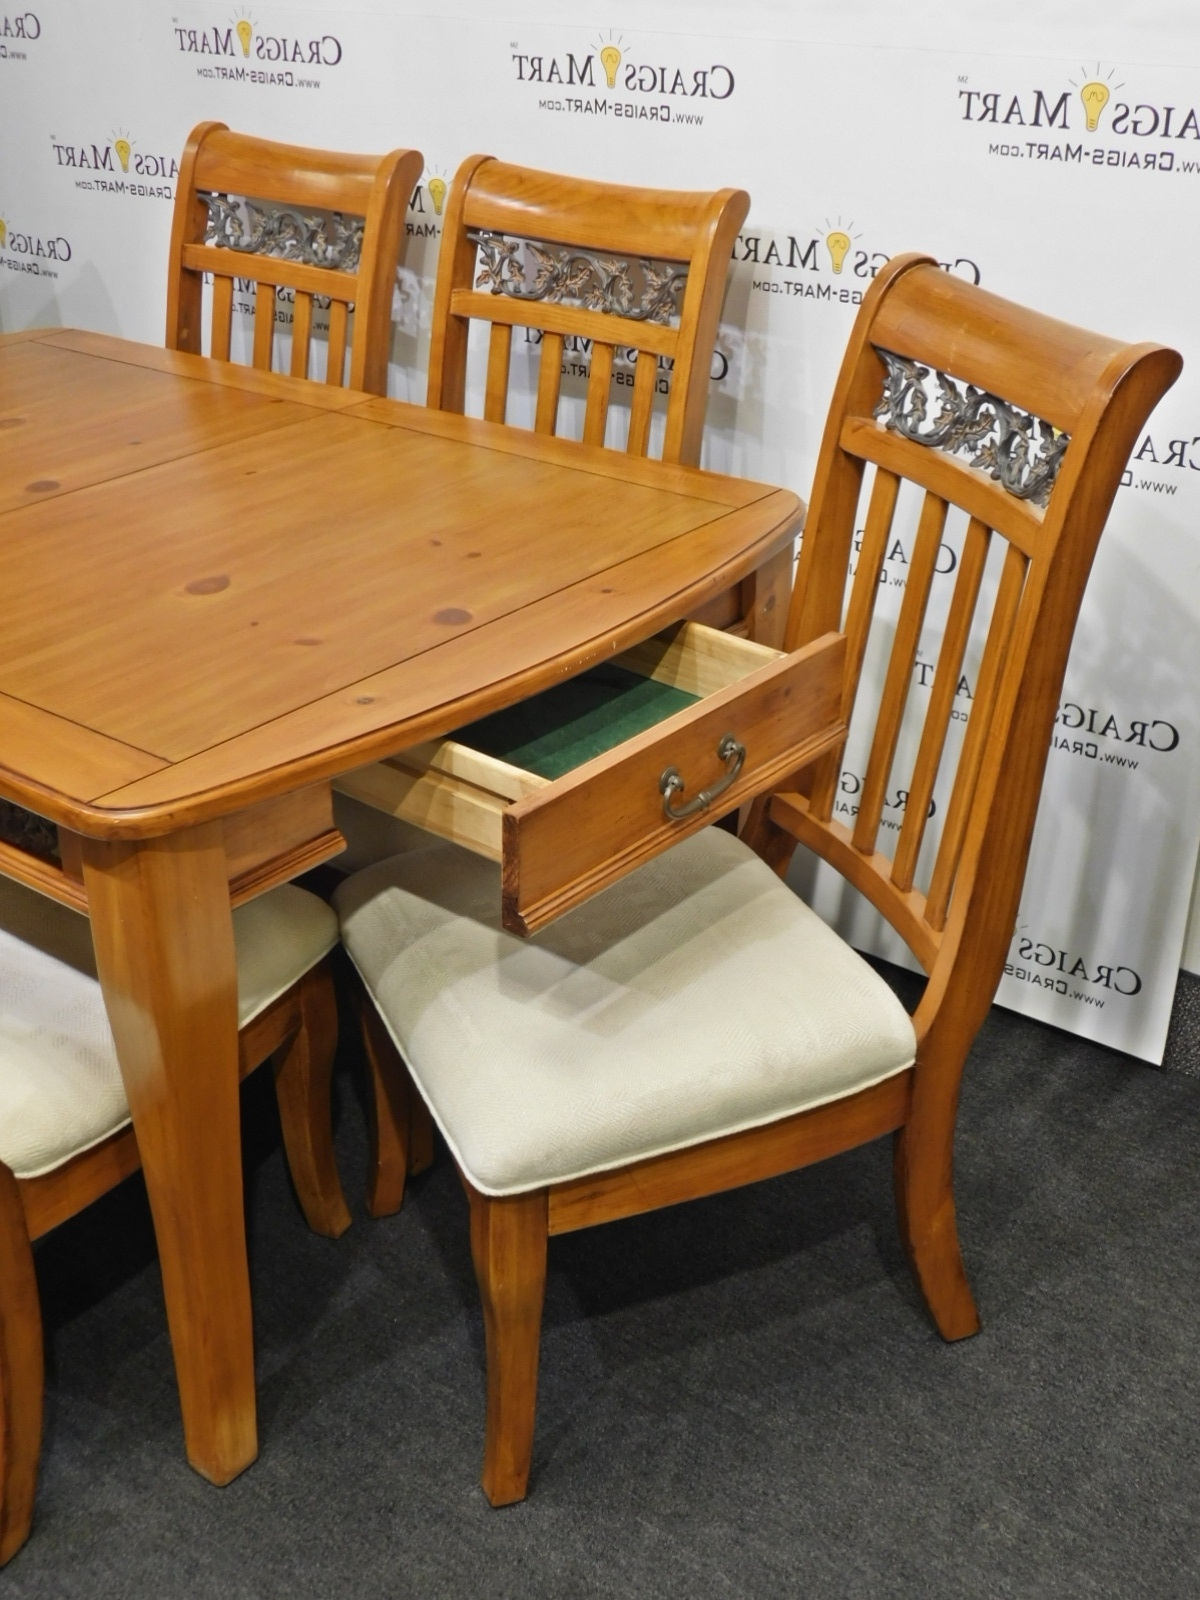 Dining Tables And 8 Chairs With Regard To 2018 Dining Table With 8 Chairs And Leaf (View 11 of 25)